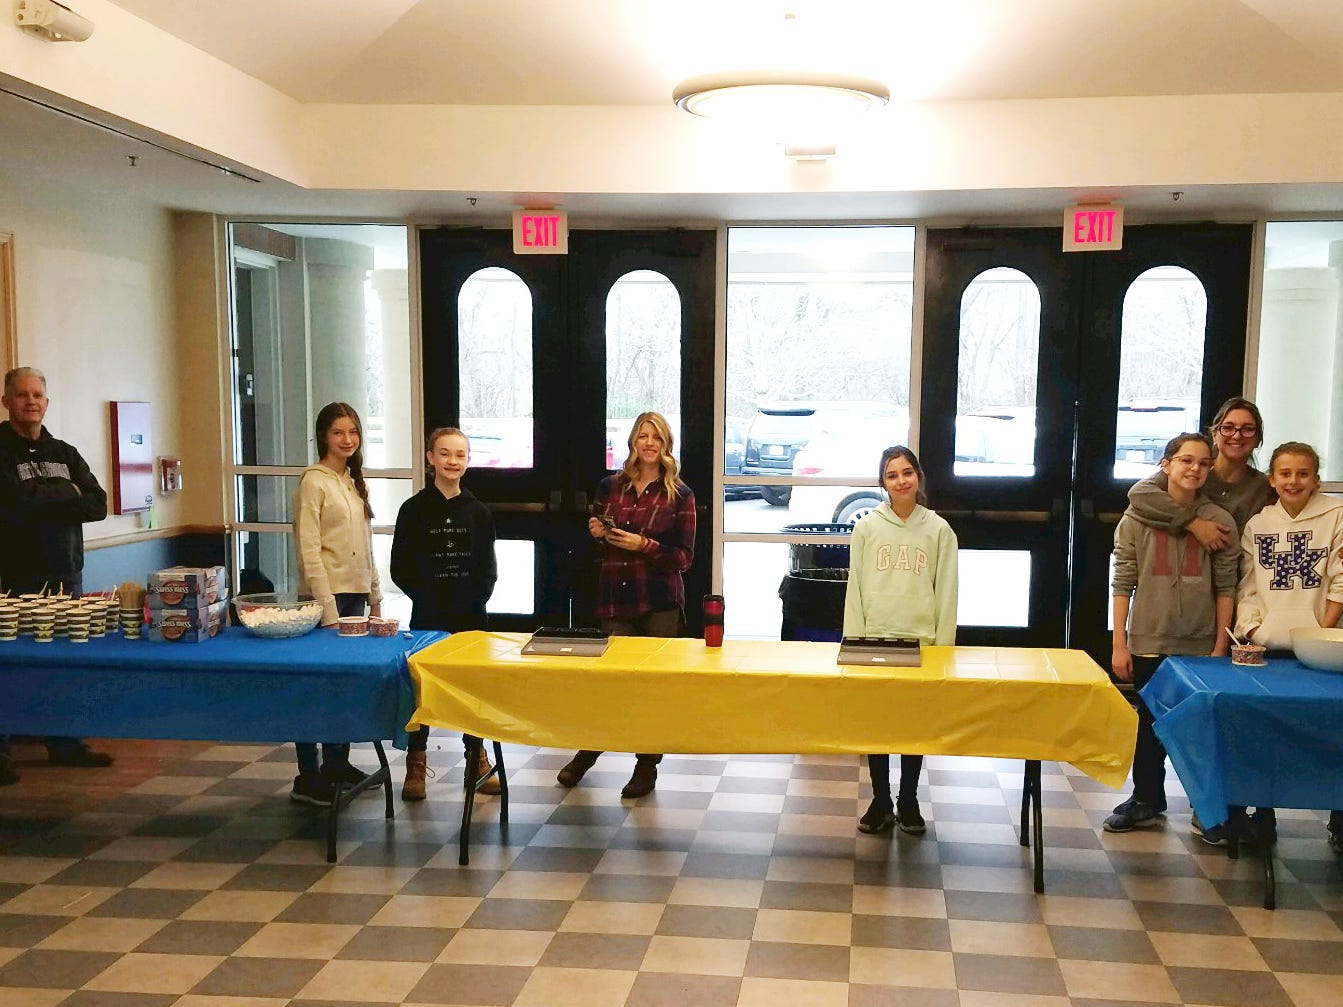 """Hot Chocolate Stand - """"Have Hot Cocoa & Smile""""...They COLLECTED $241.50. From left to right: Dr. Jeff Horner (Rachel's dad), Rachel Horner, Addison Irvin, Mrs. Niki Horner (Rachel's mom), Zoe Hawkersmith, Mia Hawkersmith, Mrs. Vale Hawkersmith (Zoe and Mia's mom), and Ann Gentry Lambert."""